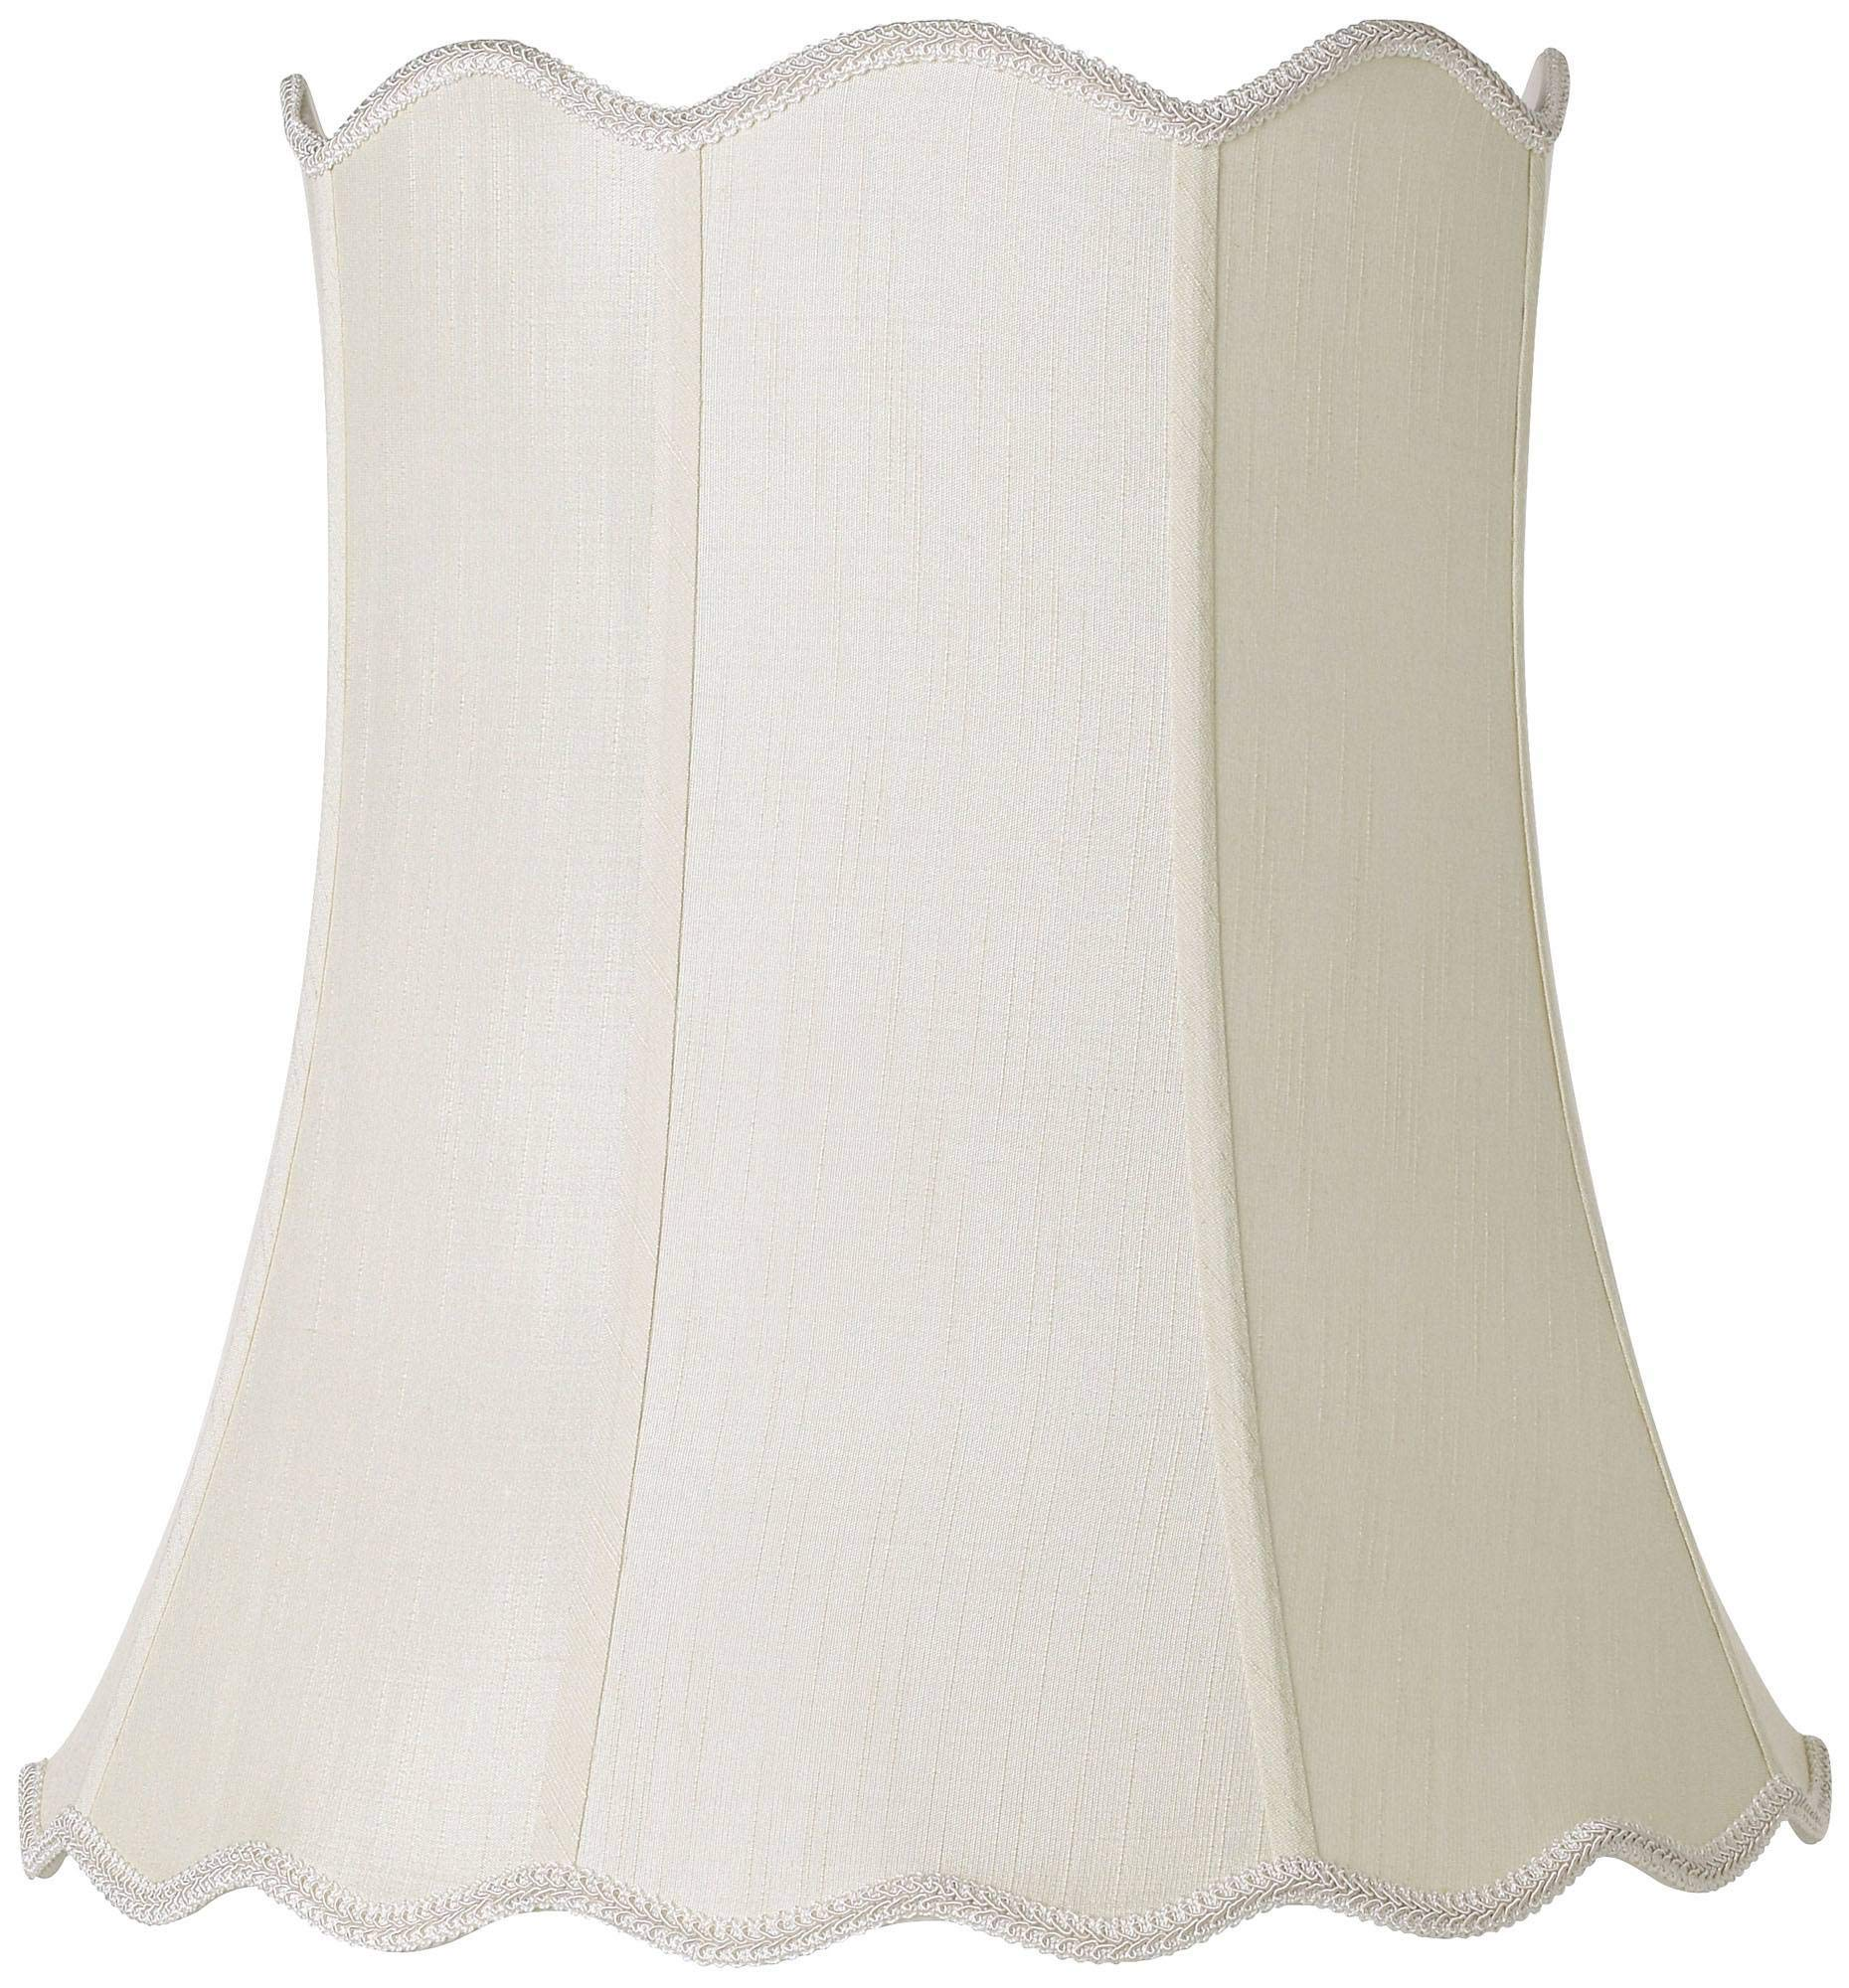 Imperial Creme Scallop Bell Lamp Shade 14x20x20 (Spider) - Imperial Shade